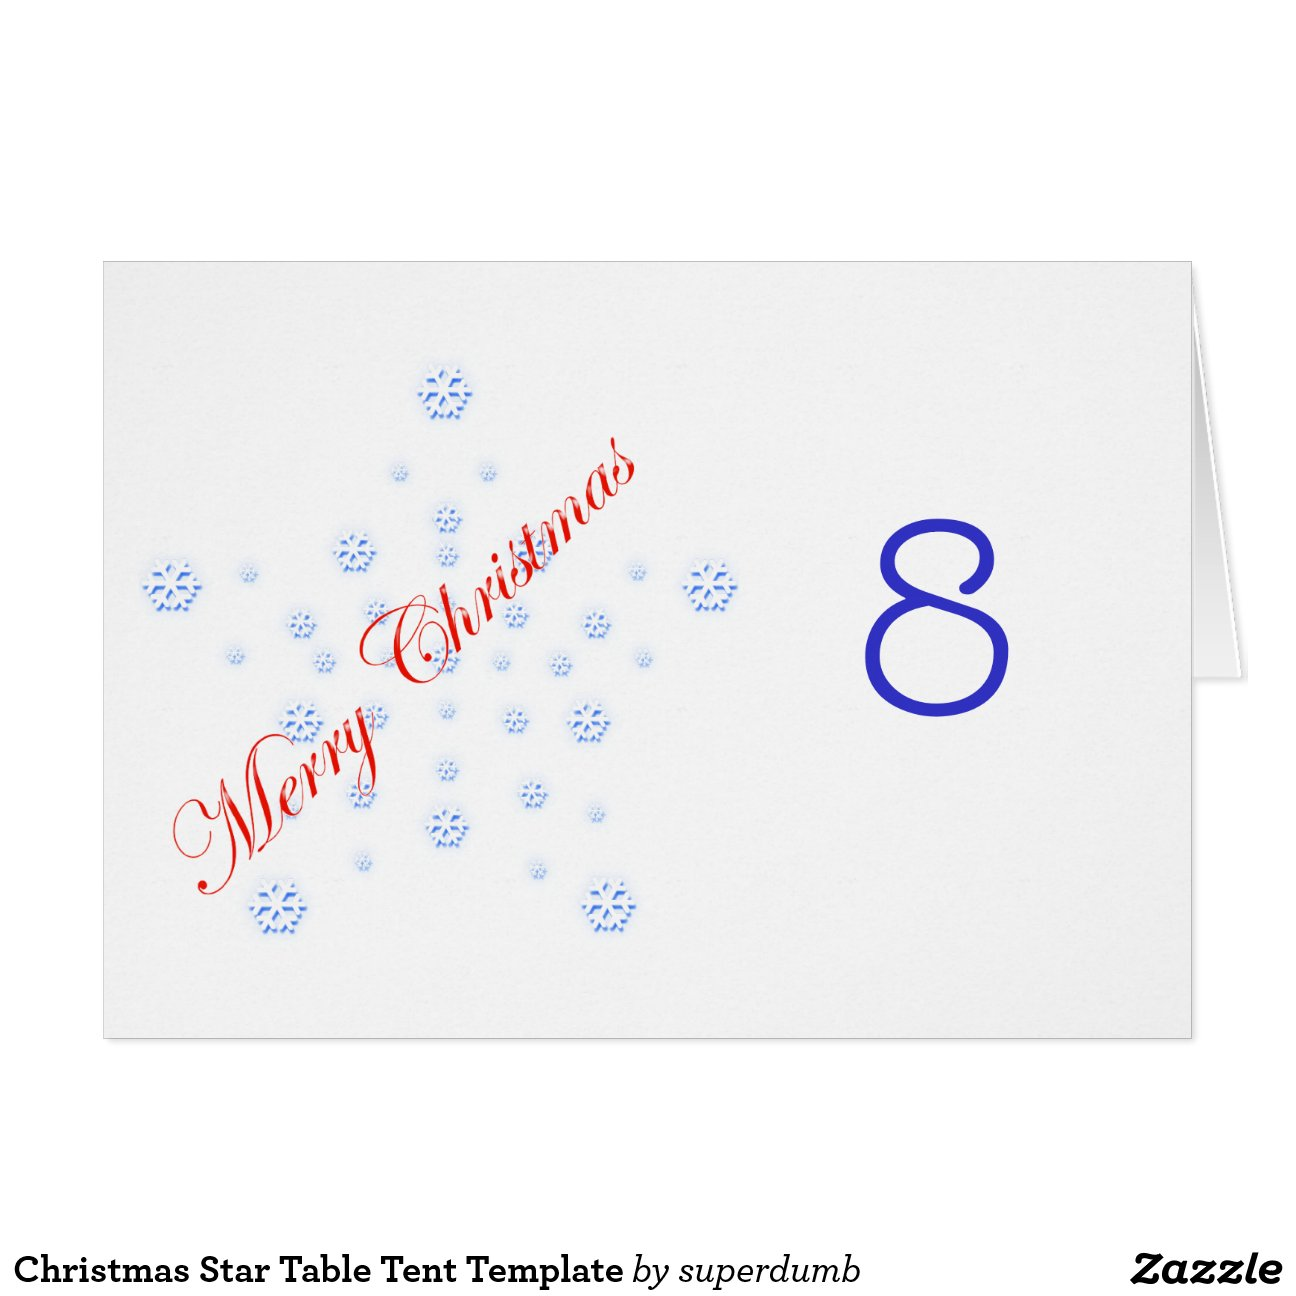 Christmas Star Table Tent Template Stationery Note Card Zazzle s4W427RS  sc 1 st  CyberUse & Table Tent Template | cyberuse